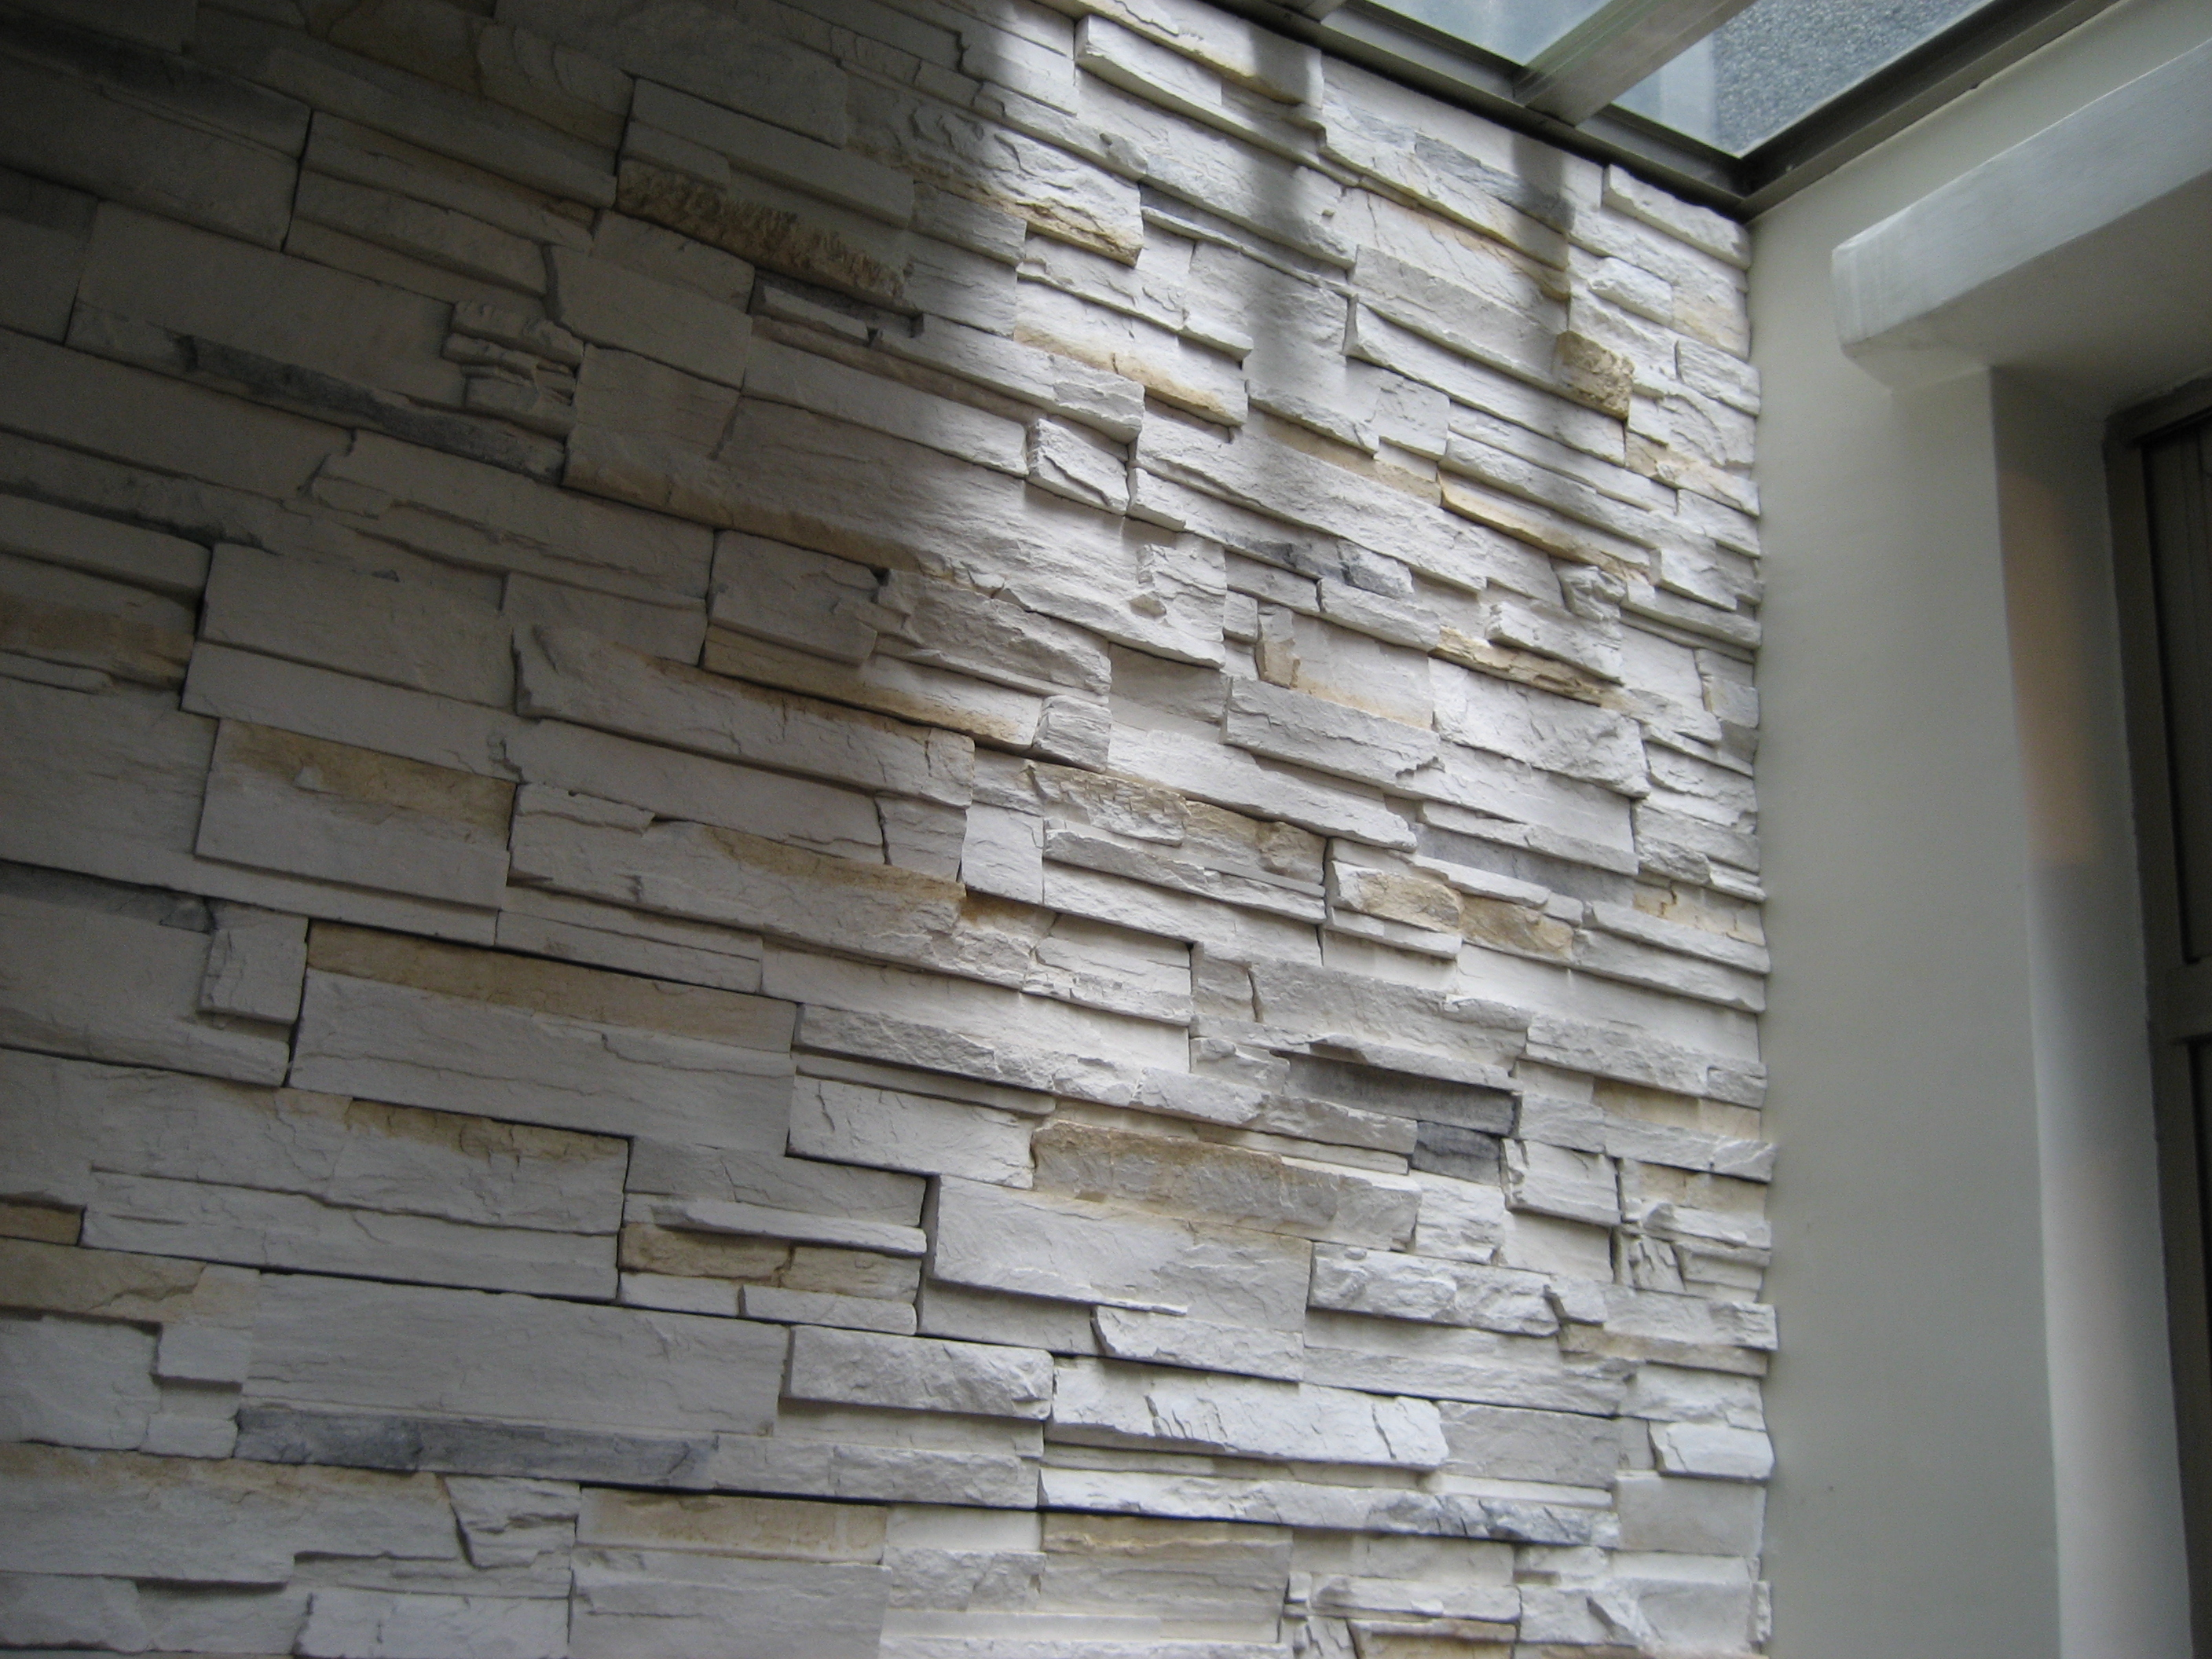 The benefits of using Stone Selex Lightweight Stone Veneers